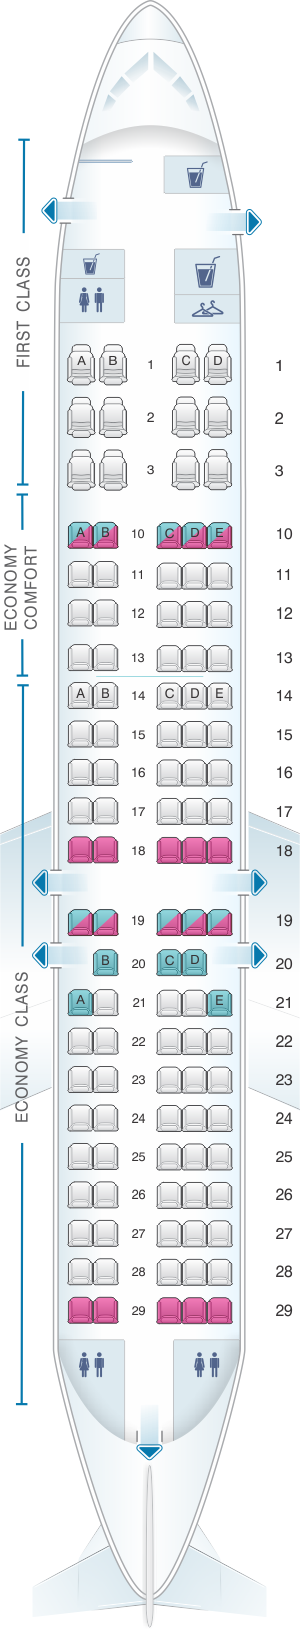 Seat map for Delta Air Lines Boeing B717 200